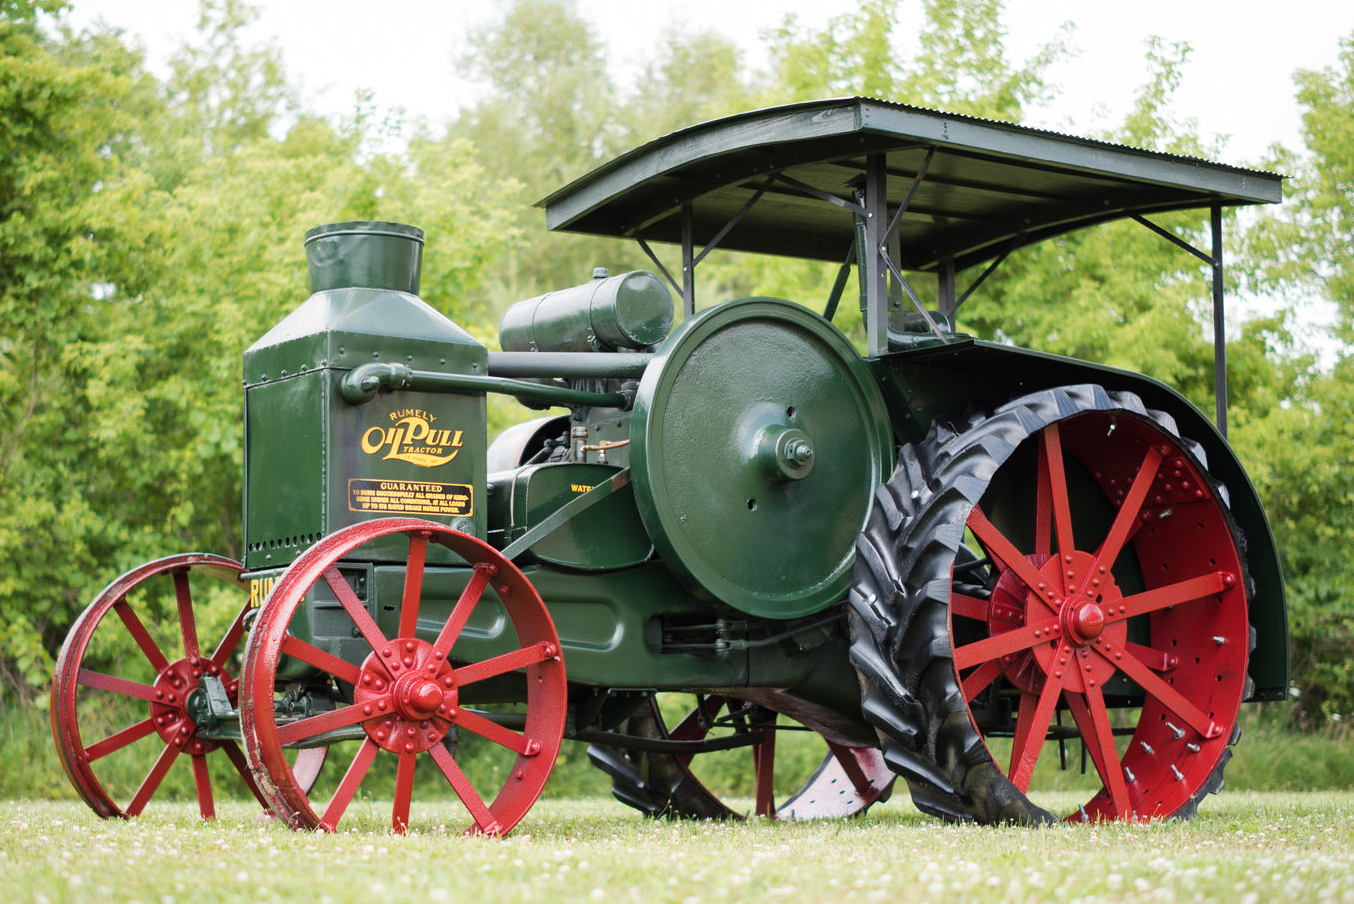 rumely-oil-pull-traction-engine-2a